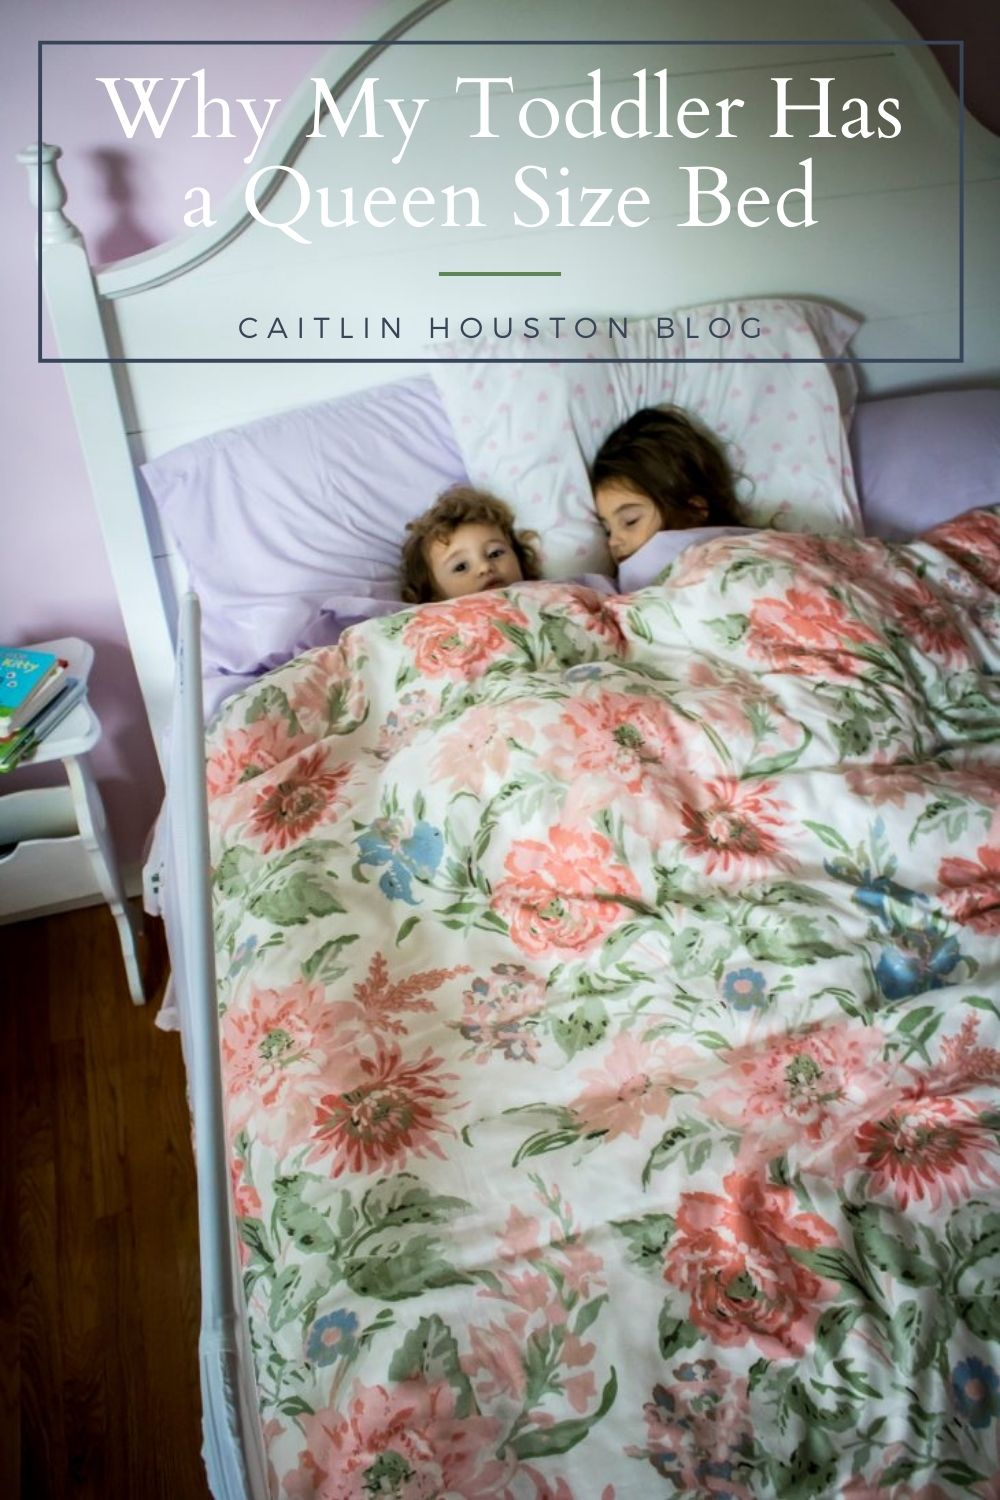 Why My Toddler Has a Queen Size Bed